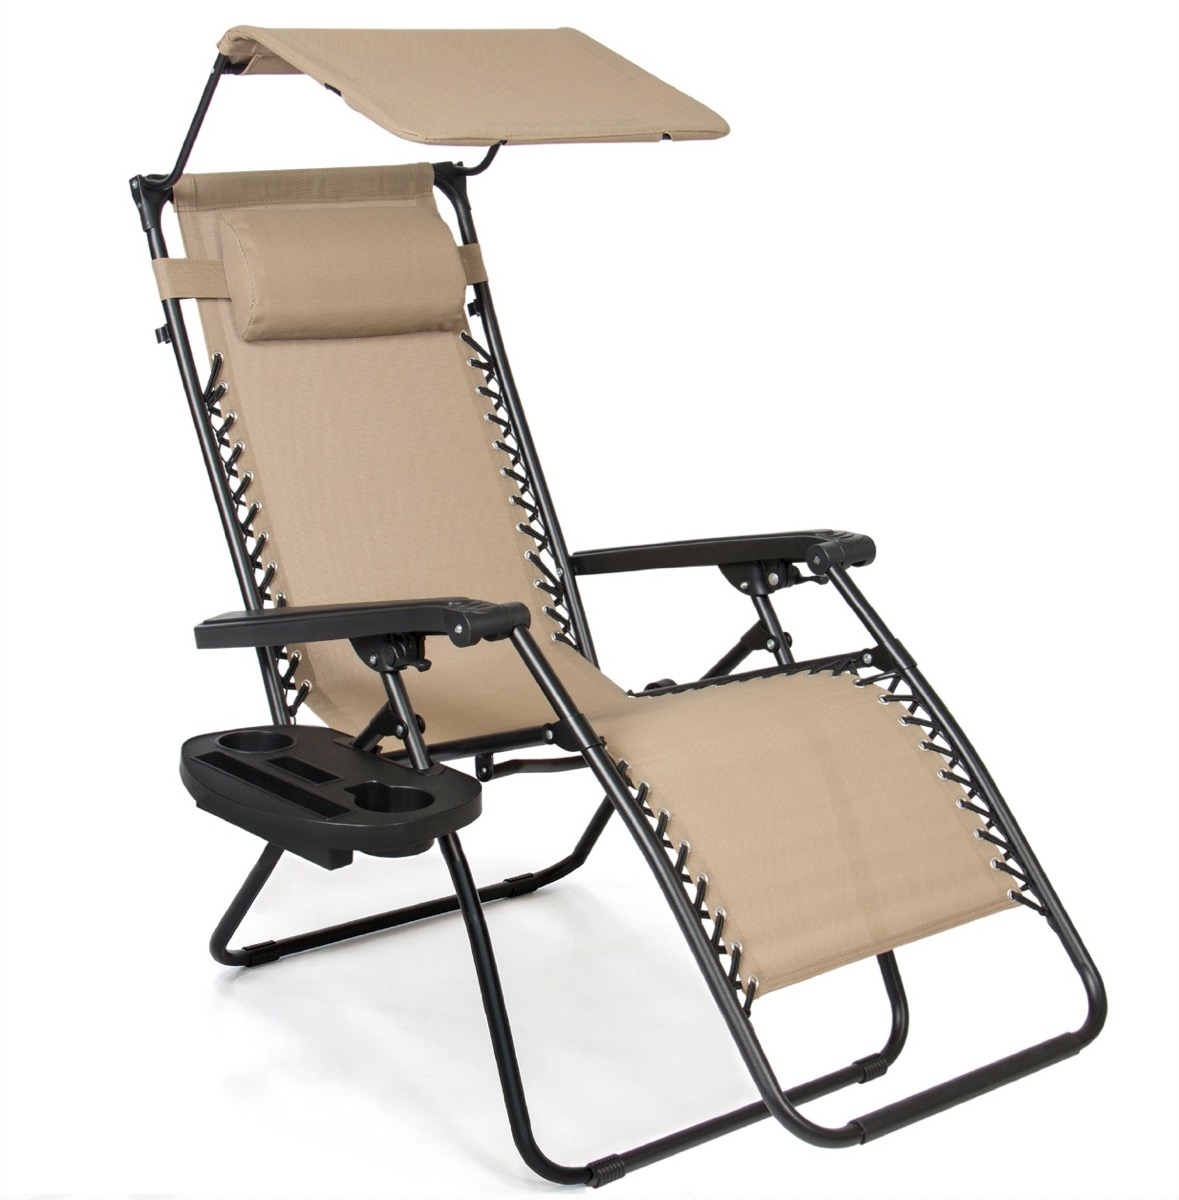 beige lounger chair with overhead canopy